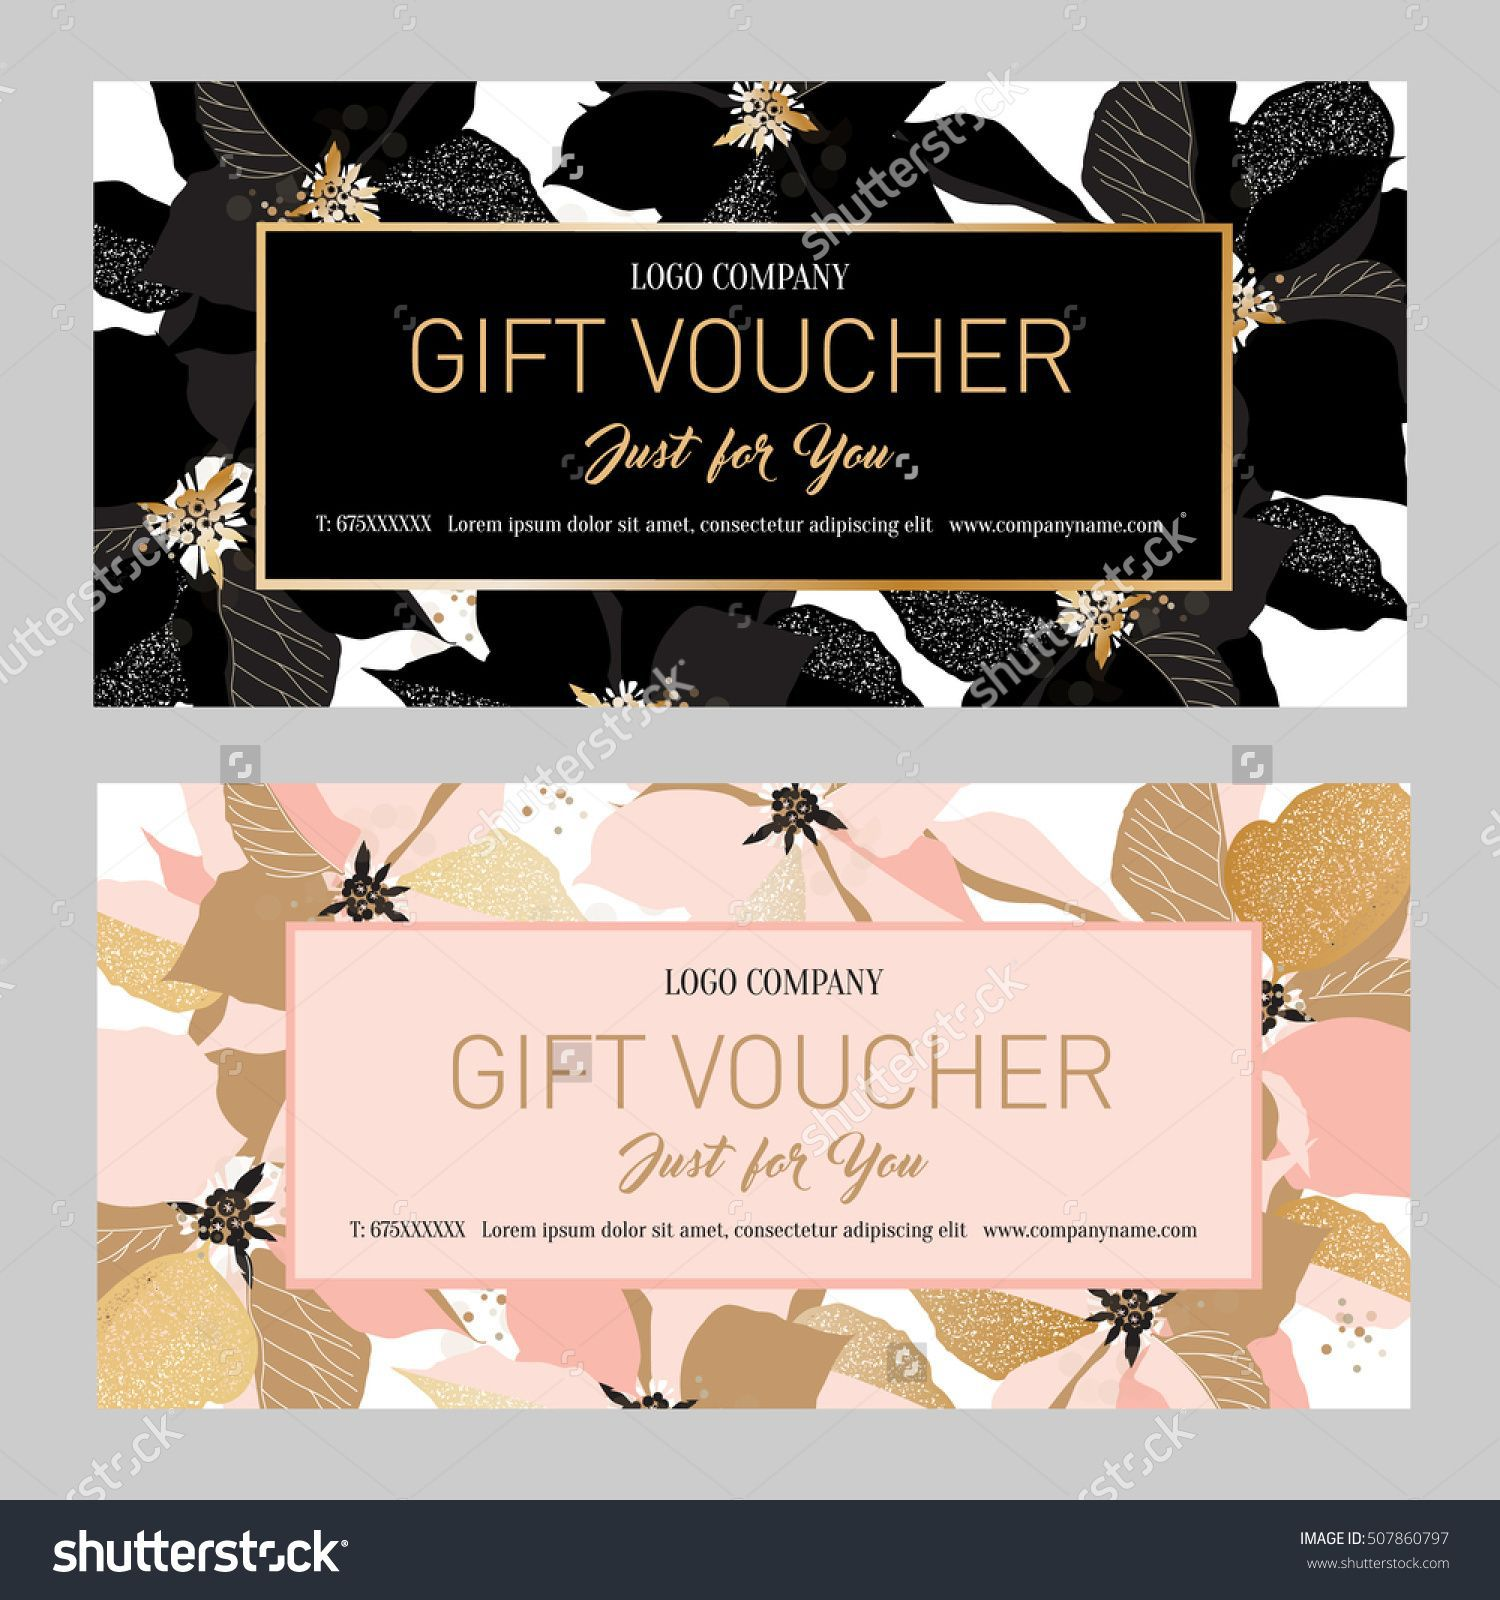 000 Fearsome Salon Gift Certificate Template Sample